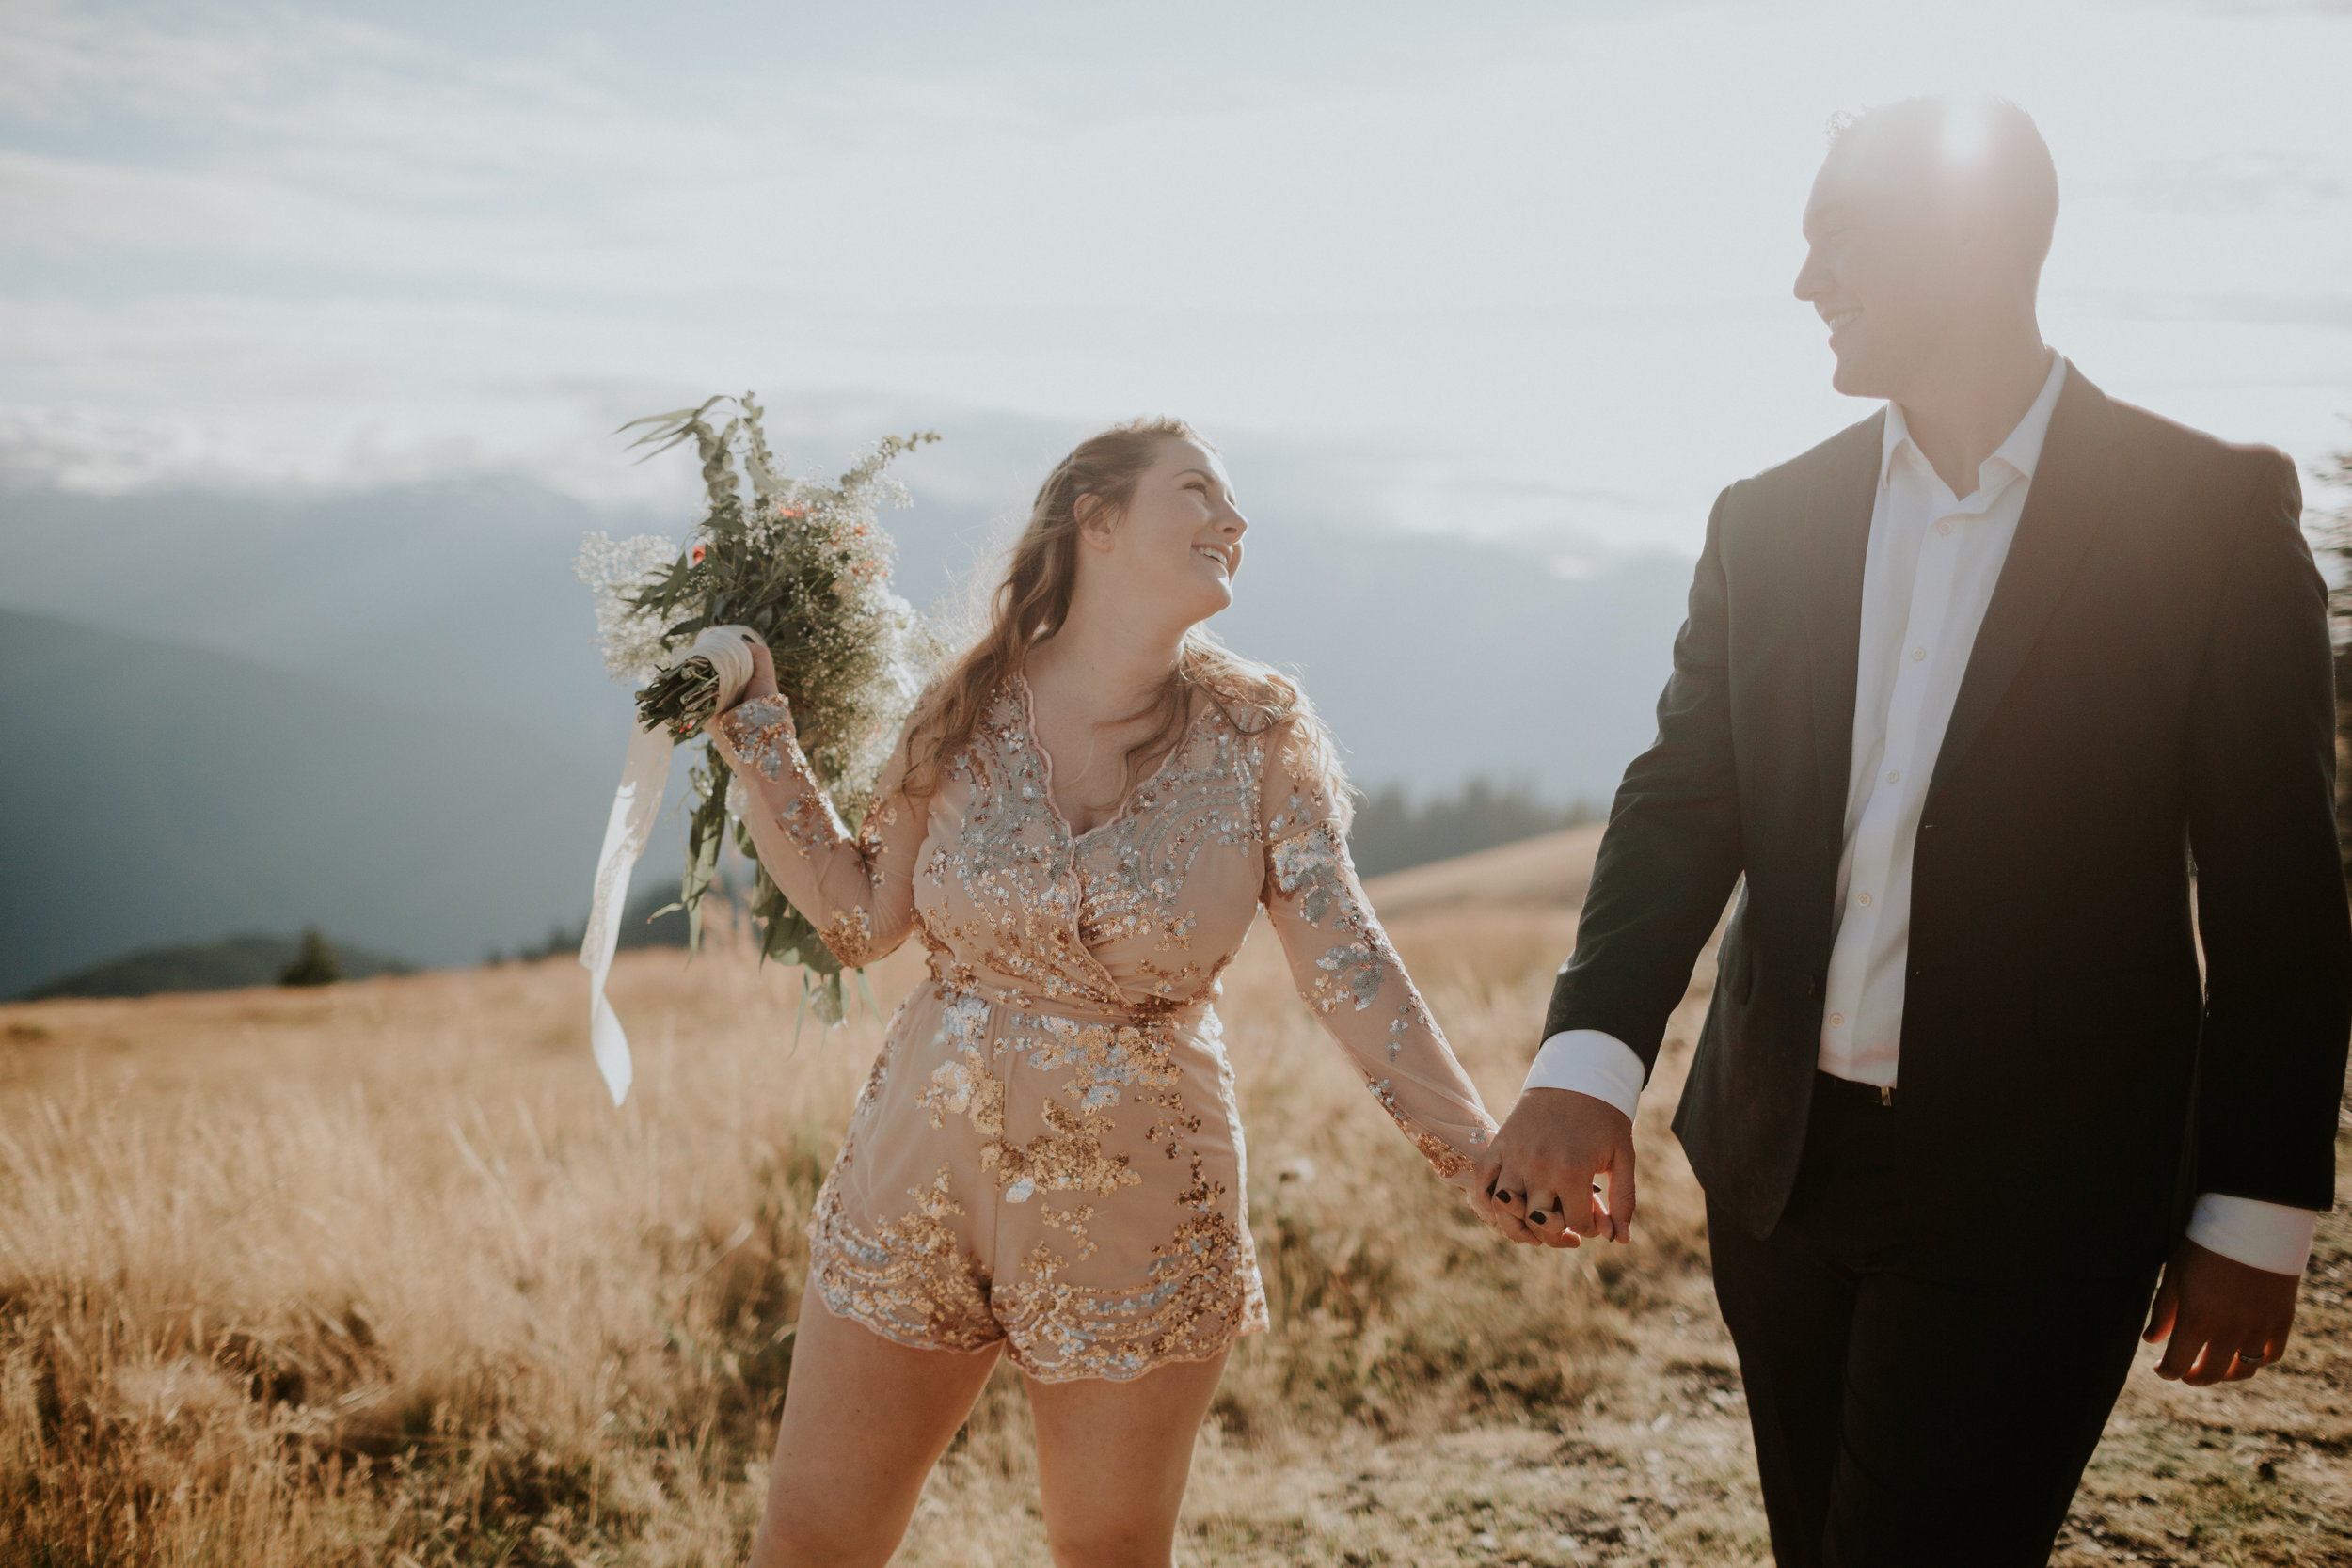 PNW-Hurricane-Ridge-Port-Angeles-Washington-elopement-photographer-kayla-dawn-photography-kayladawnphoto-wedding-anniversary-photoshoot-olympic-peninsula-121.jpg